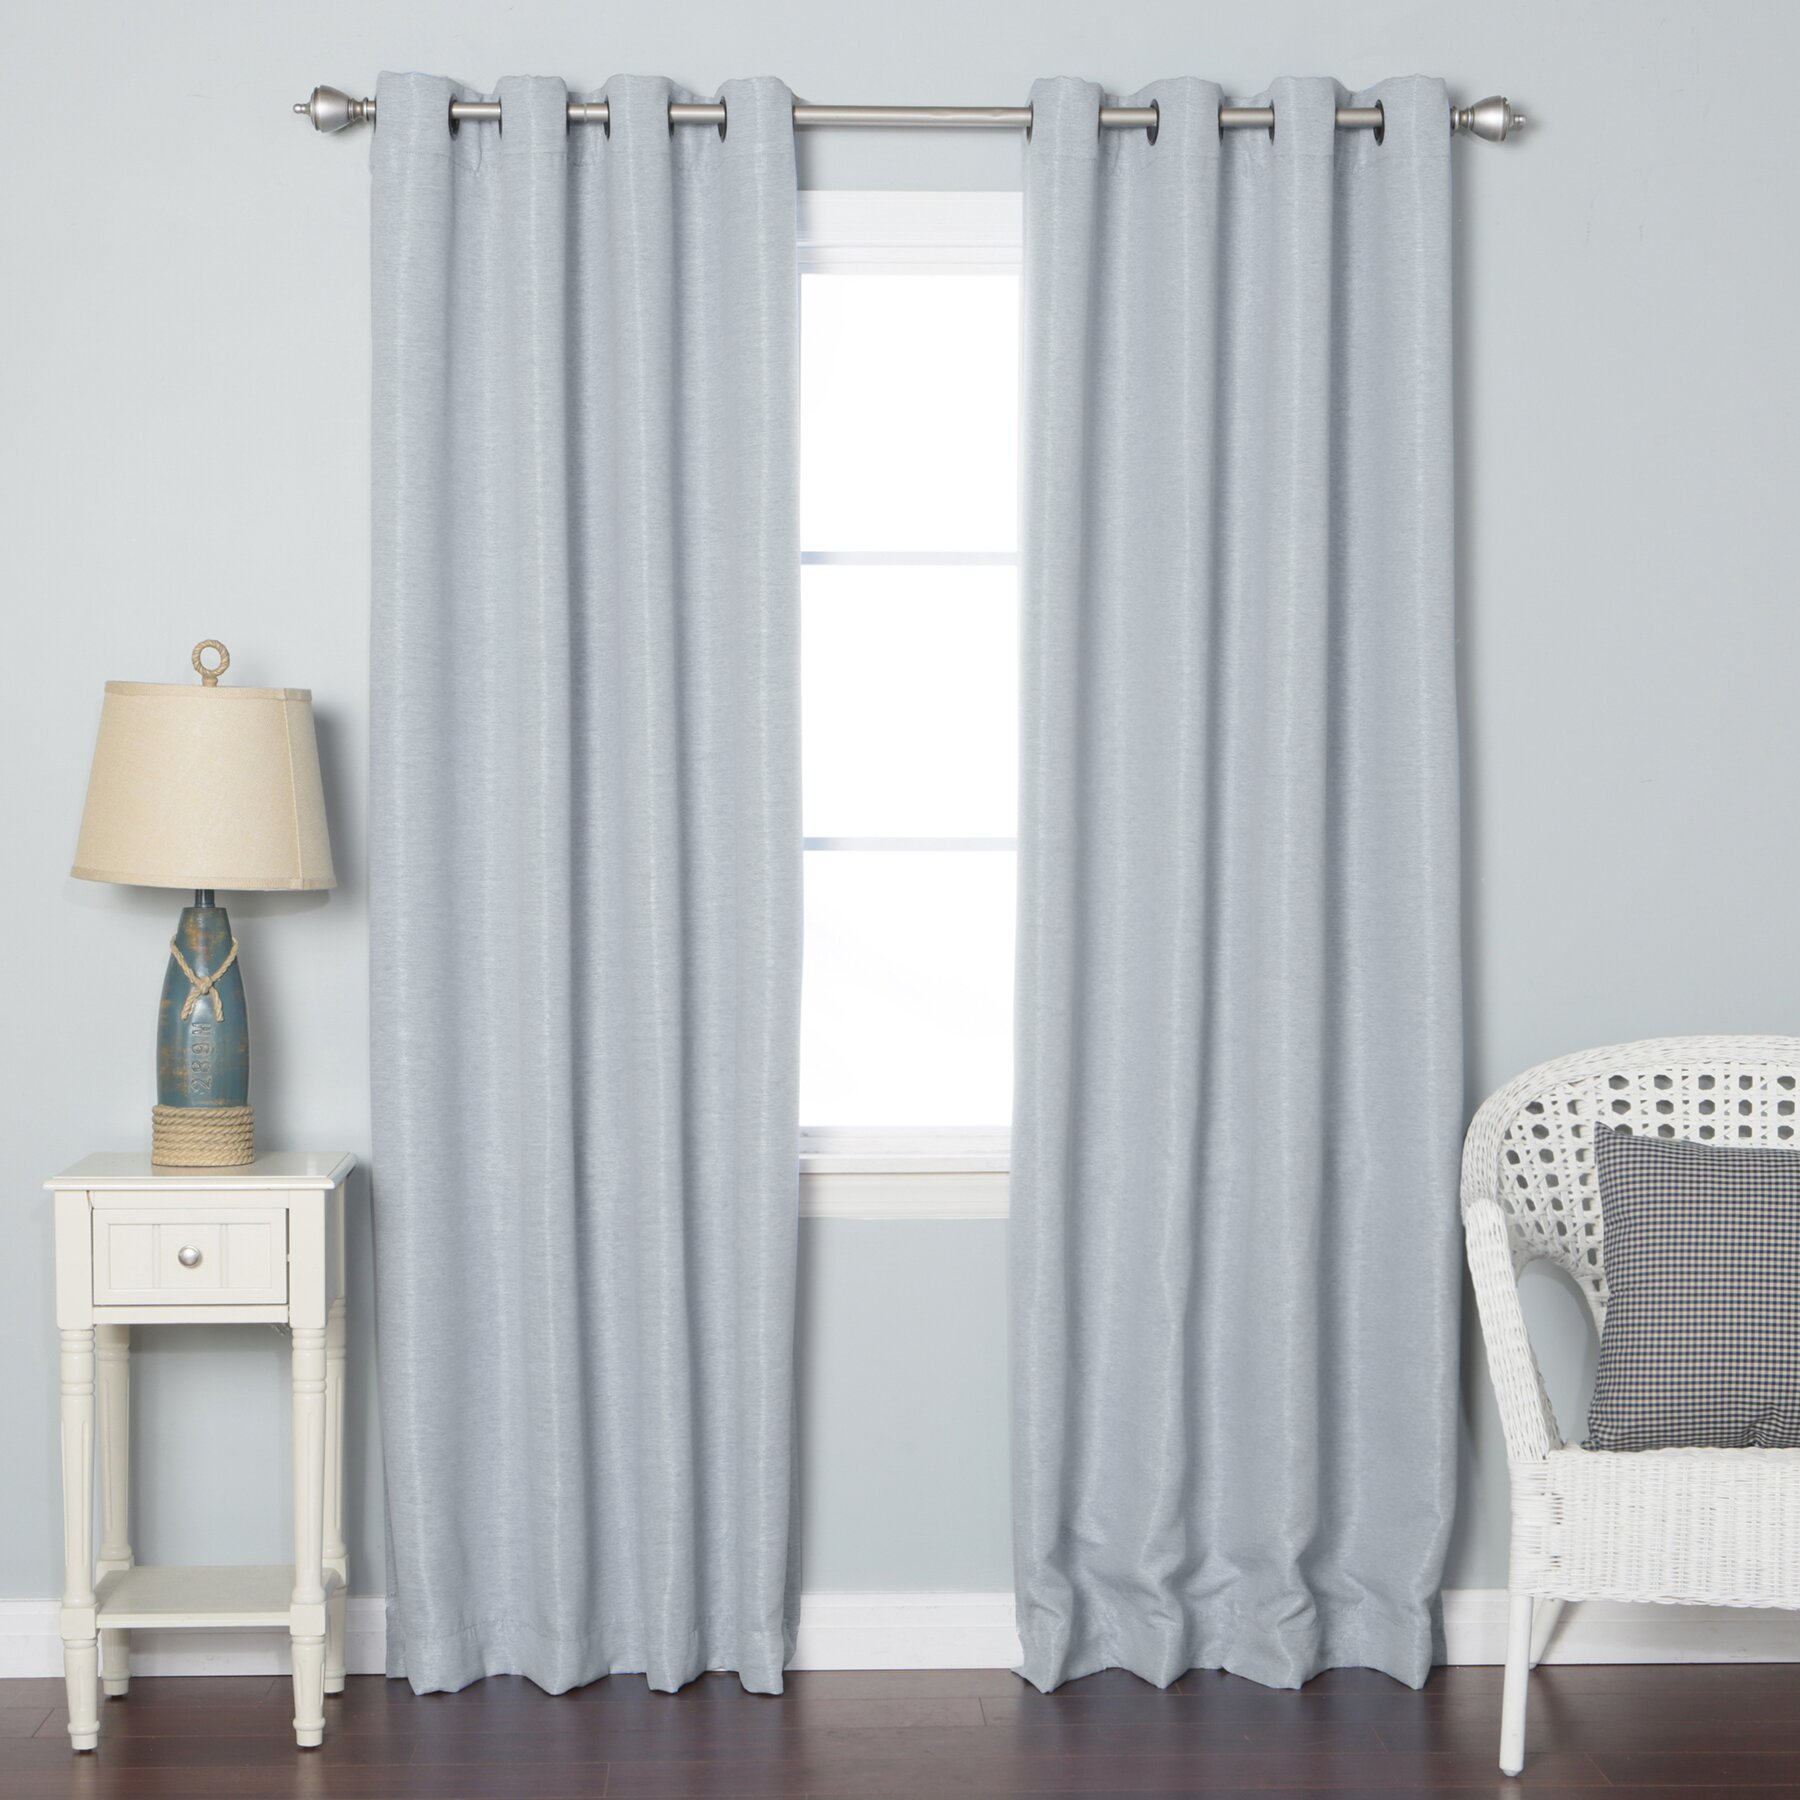 Blackout Curtain Panels By Best Home Fashion Inc